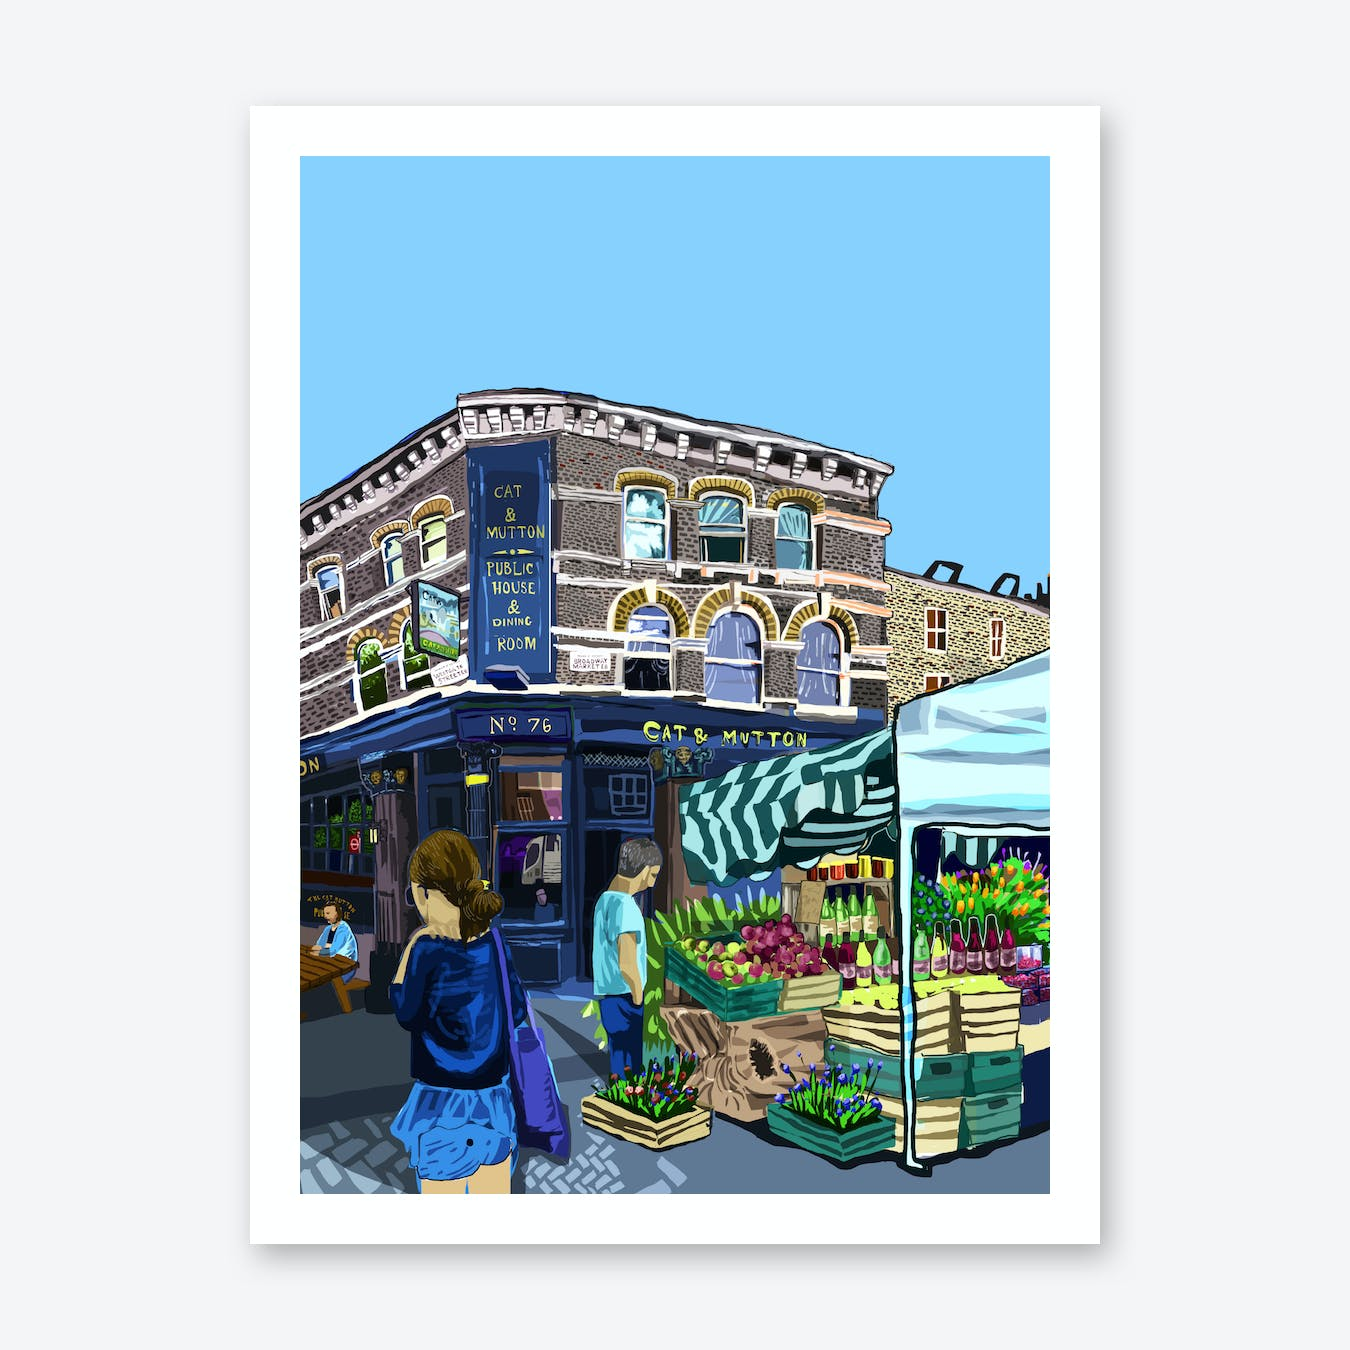 Cat and Mutton, Broadway Market, East London A3 Print